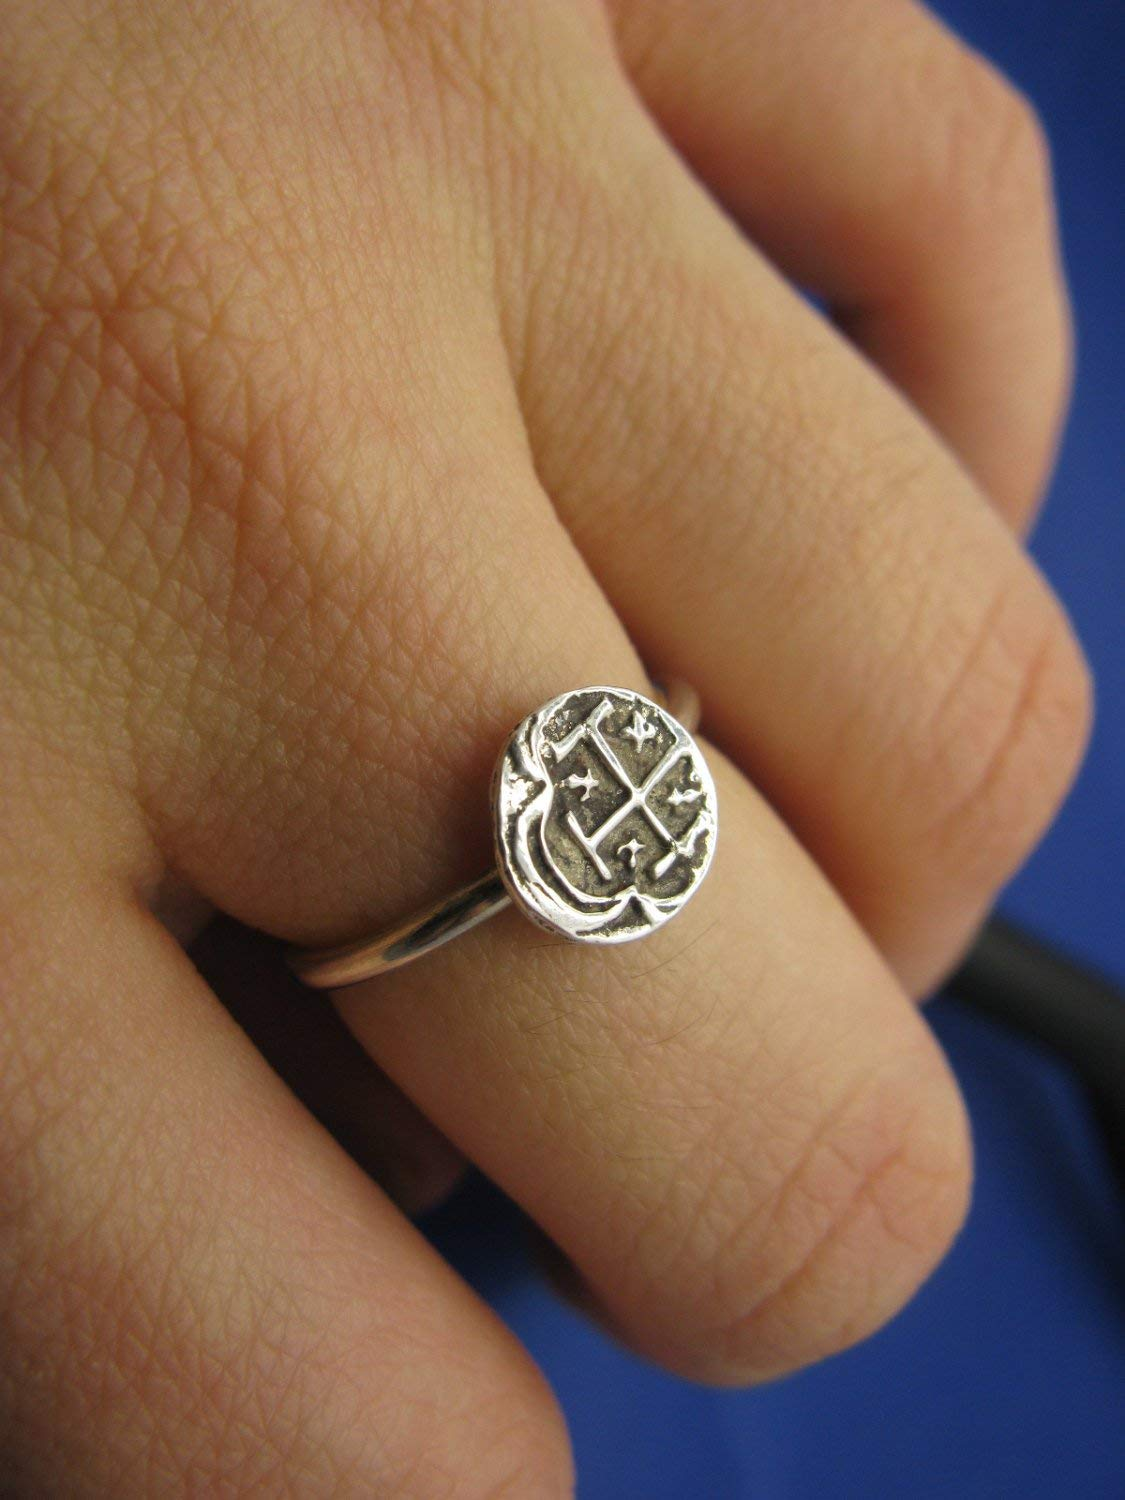 Ladies Sterling Silver Nautical Shipwreck Treasure Stack Ring with Replica Pirate Coin Designed and Handcrafted by Florida Artist